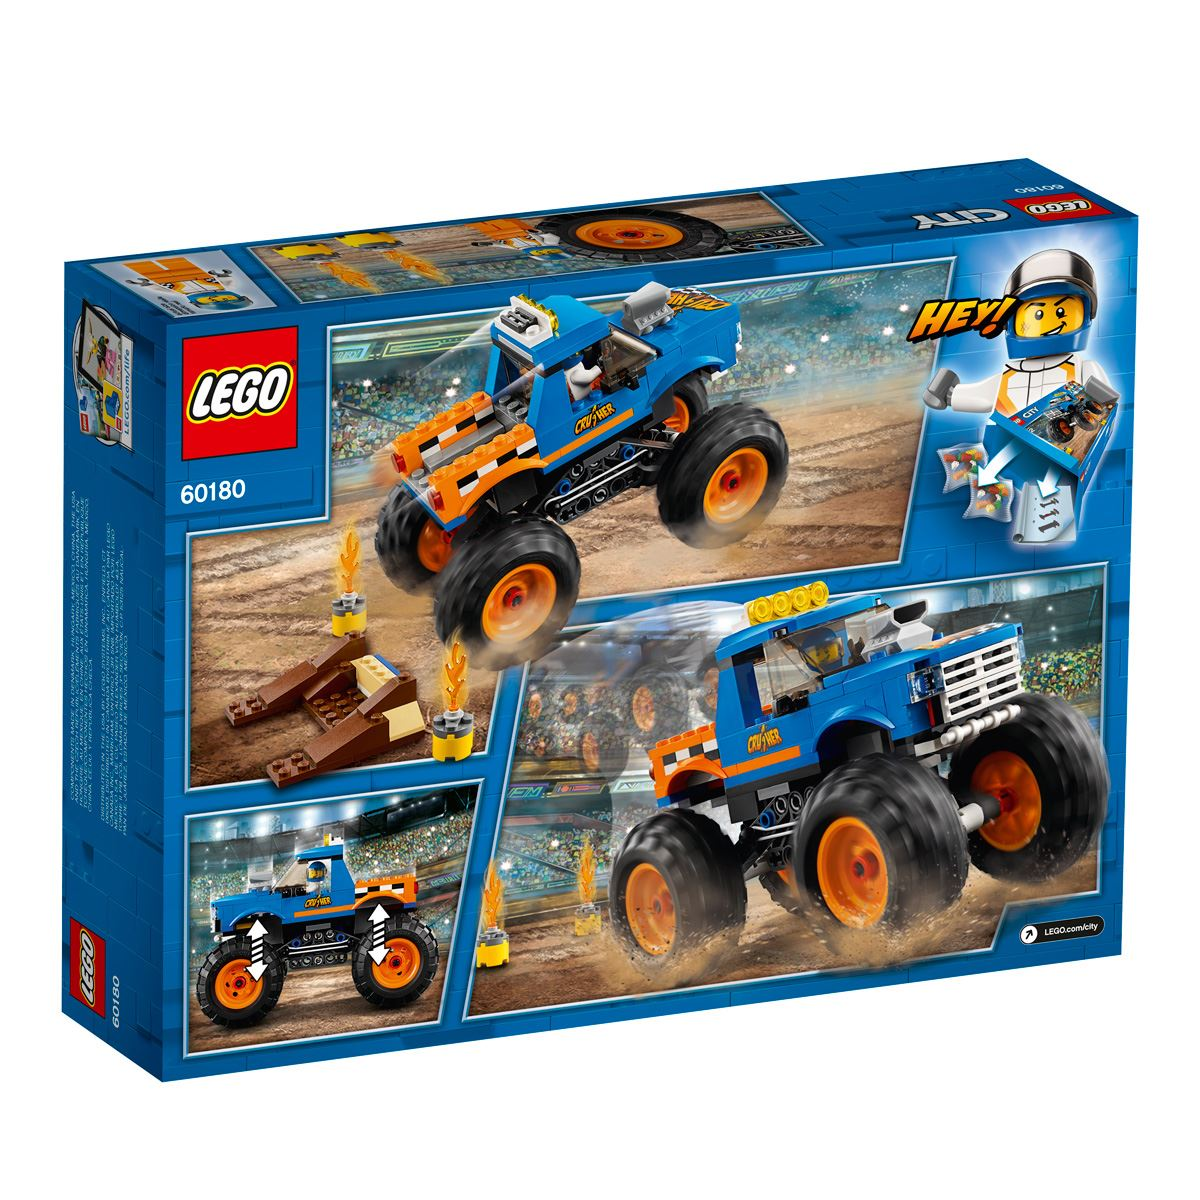 Lego city great vehicles camioneta monstruo  - Sanborns